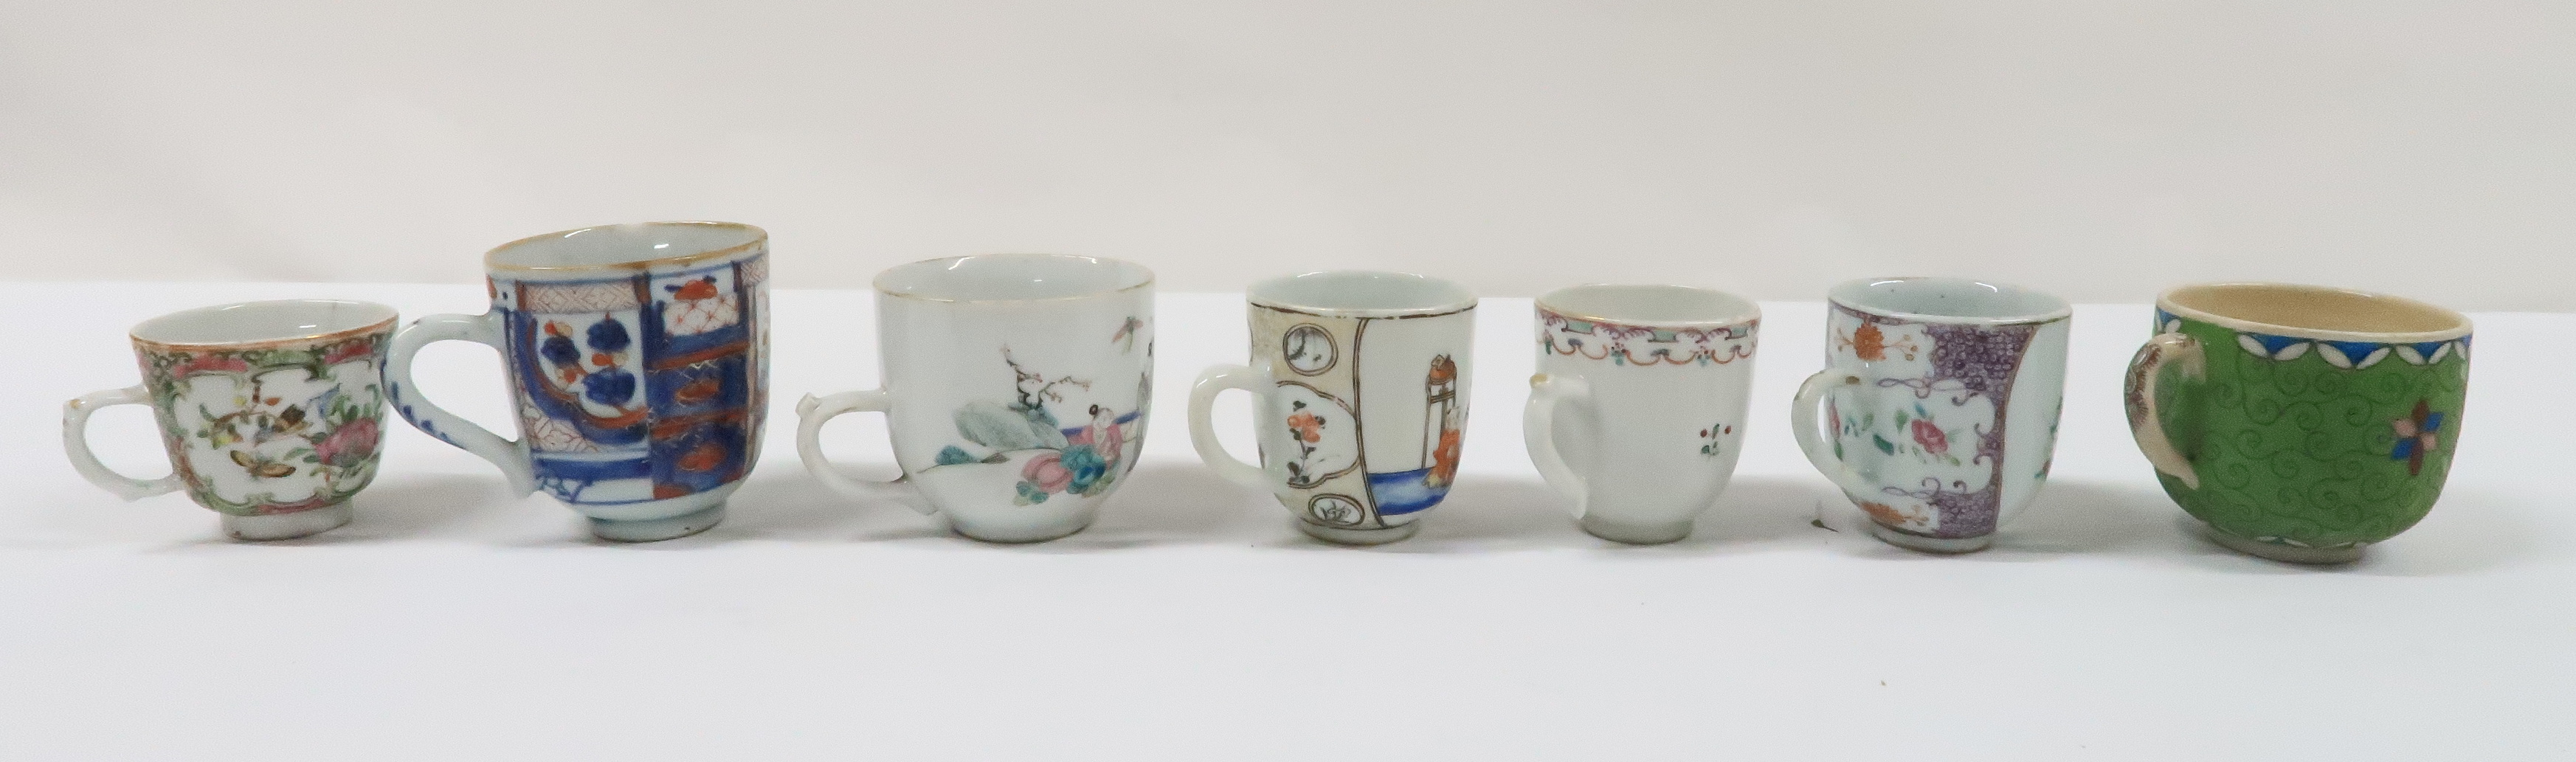 A COLLECTION OF CHINESE EXPORT TEAWARES and others including famille rose, Chien Lung, blue and - Image 11 of 22